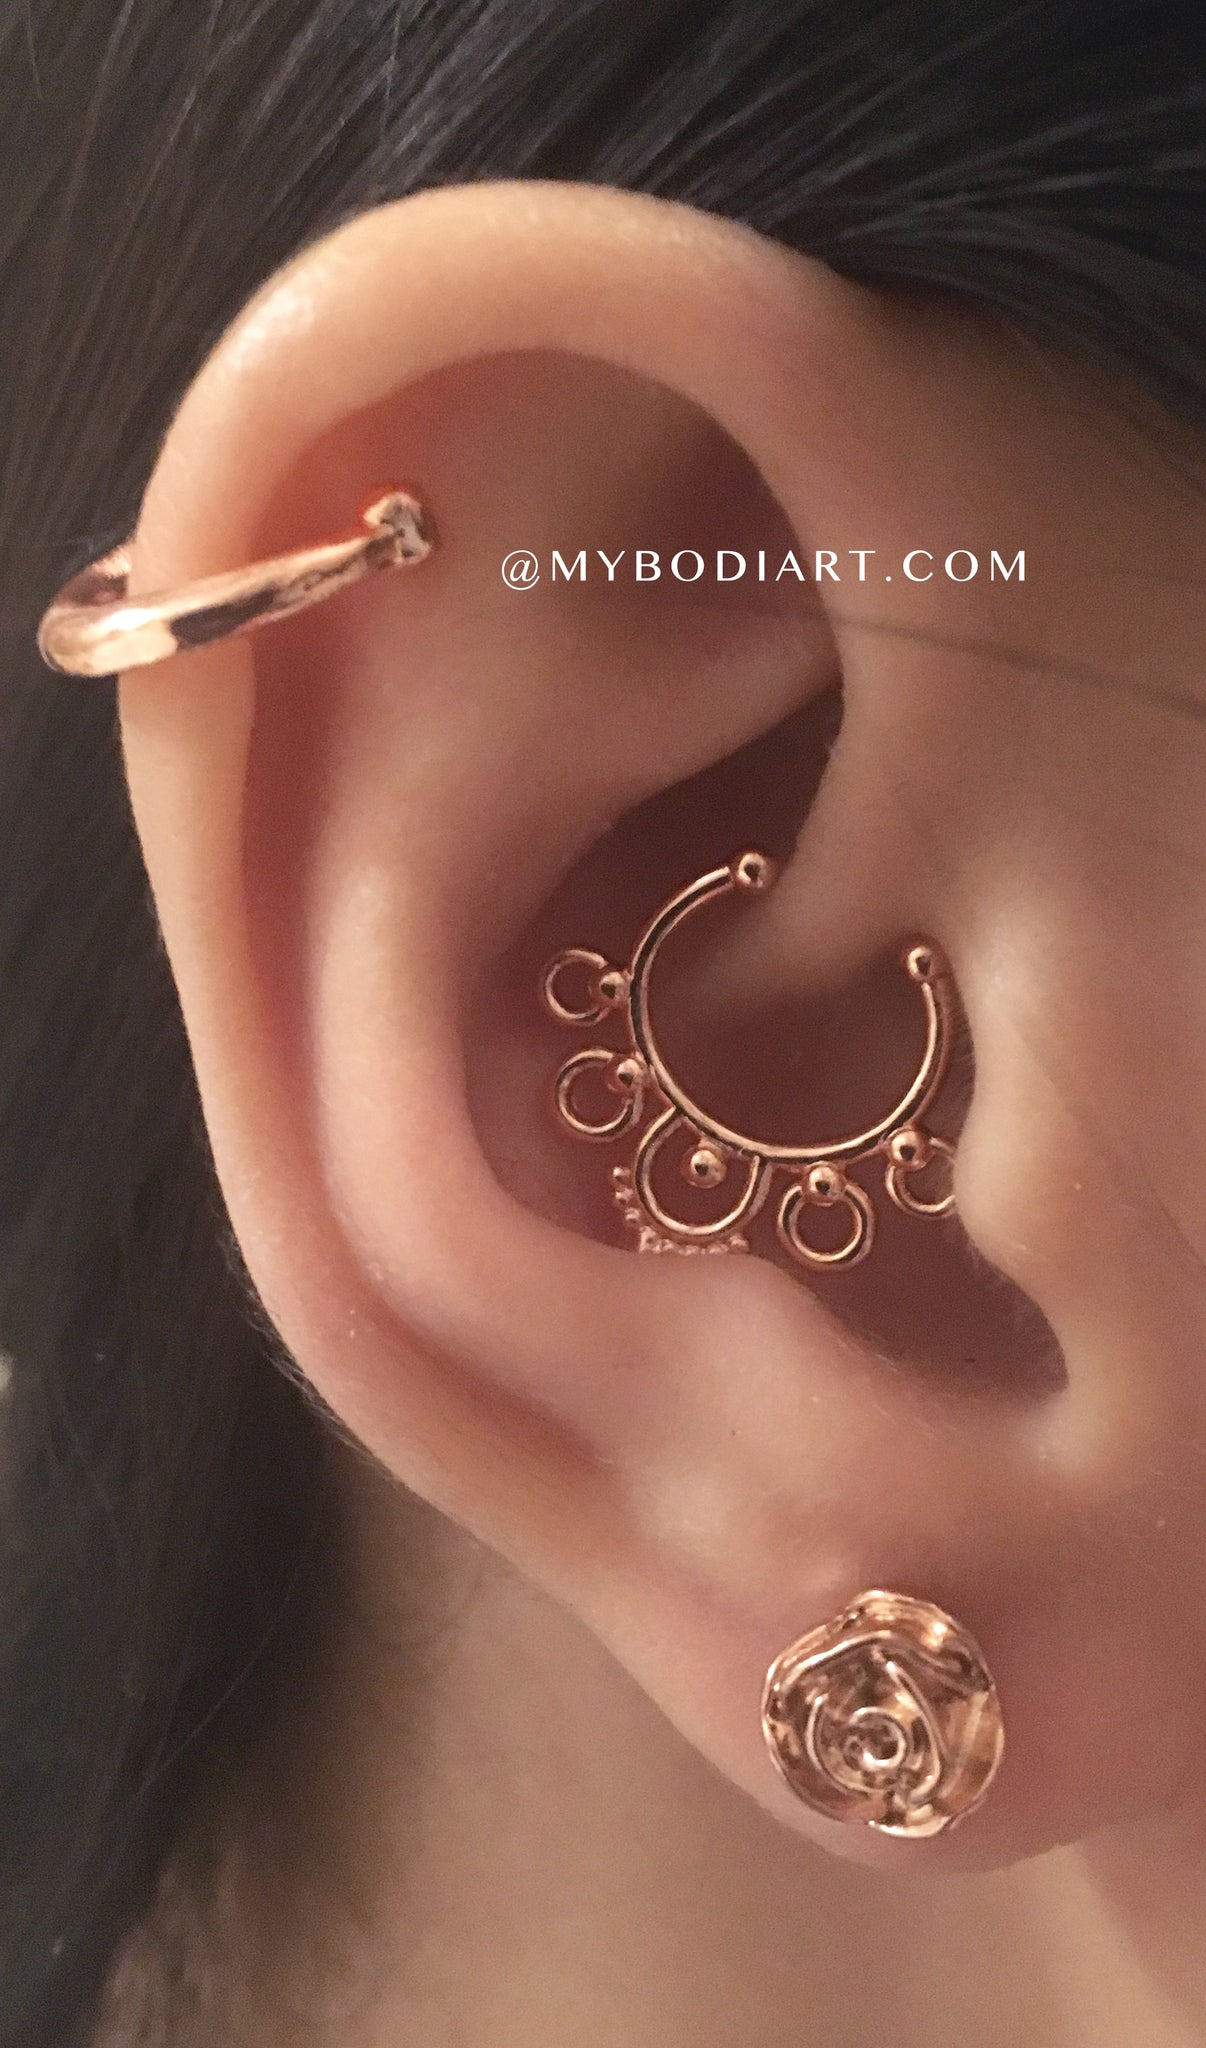 Cute Multiple Ear Piercing Ideas - Rose Gold Earring Jewelry - idées de perçage d'oreille - www.MyBodiArt.com